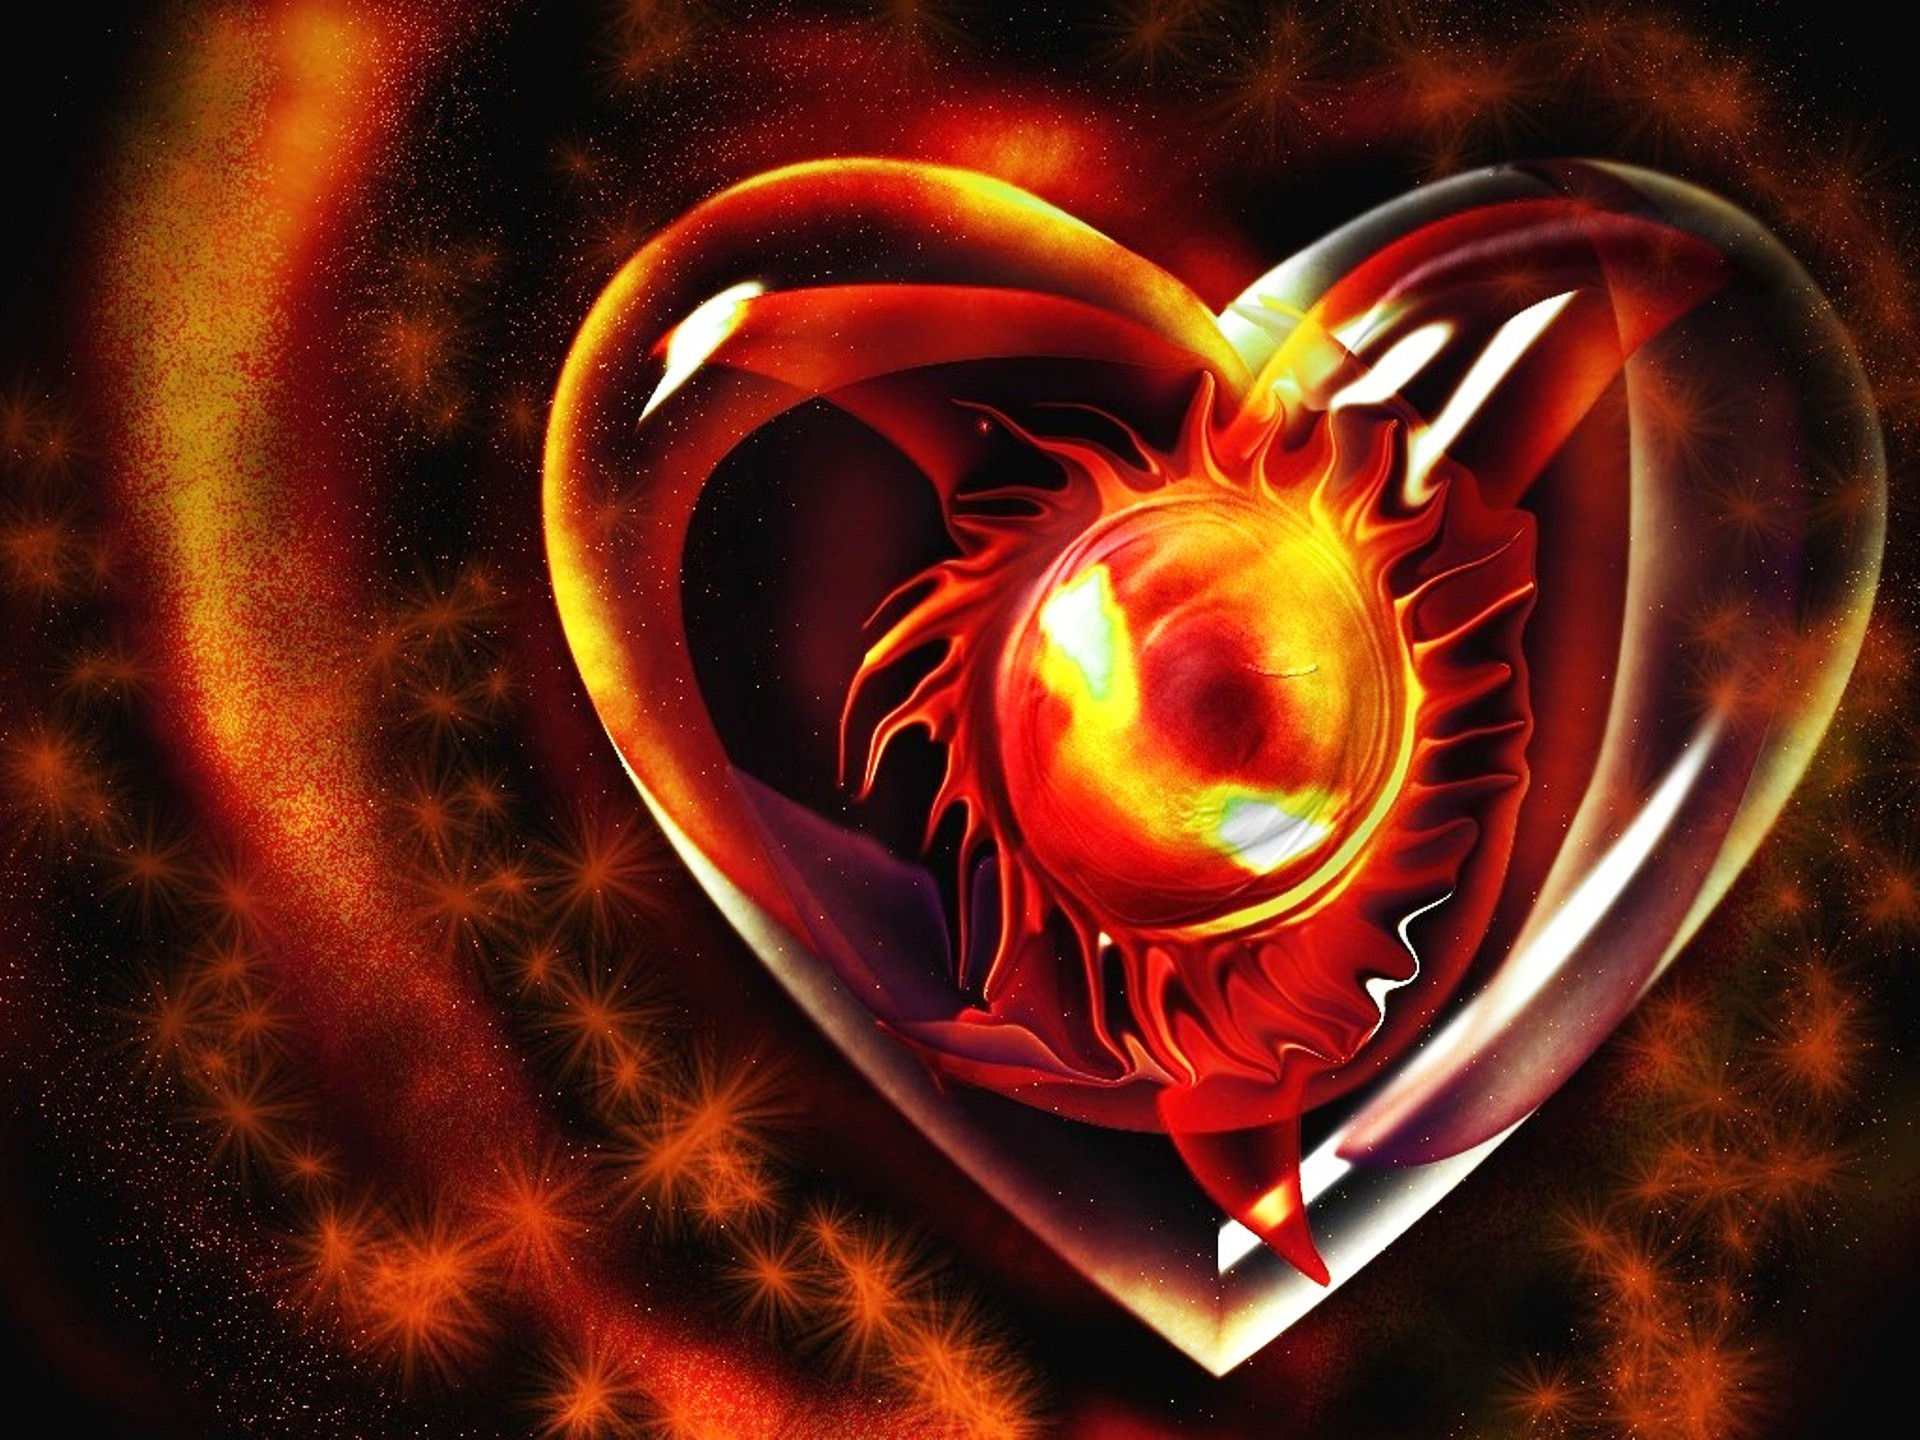 3D Fire Heart Love   HD Wallpapers   3D Fire Heart Love 1920x1440